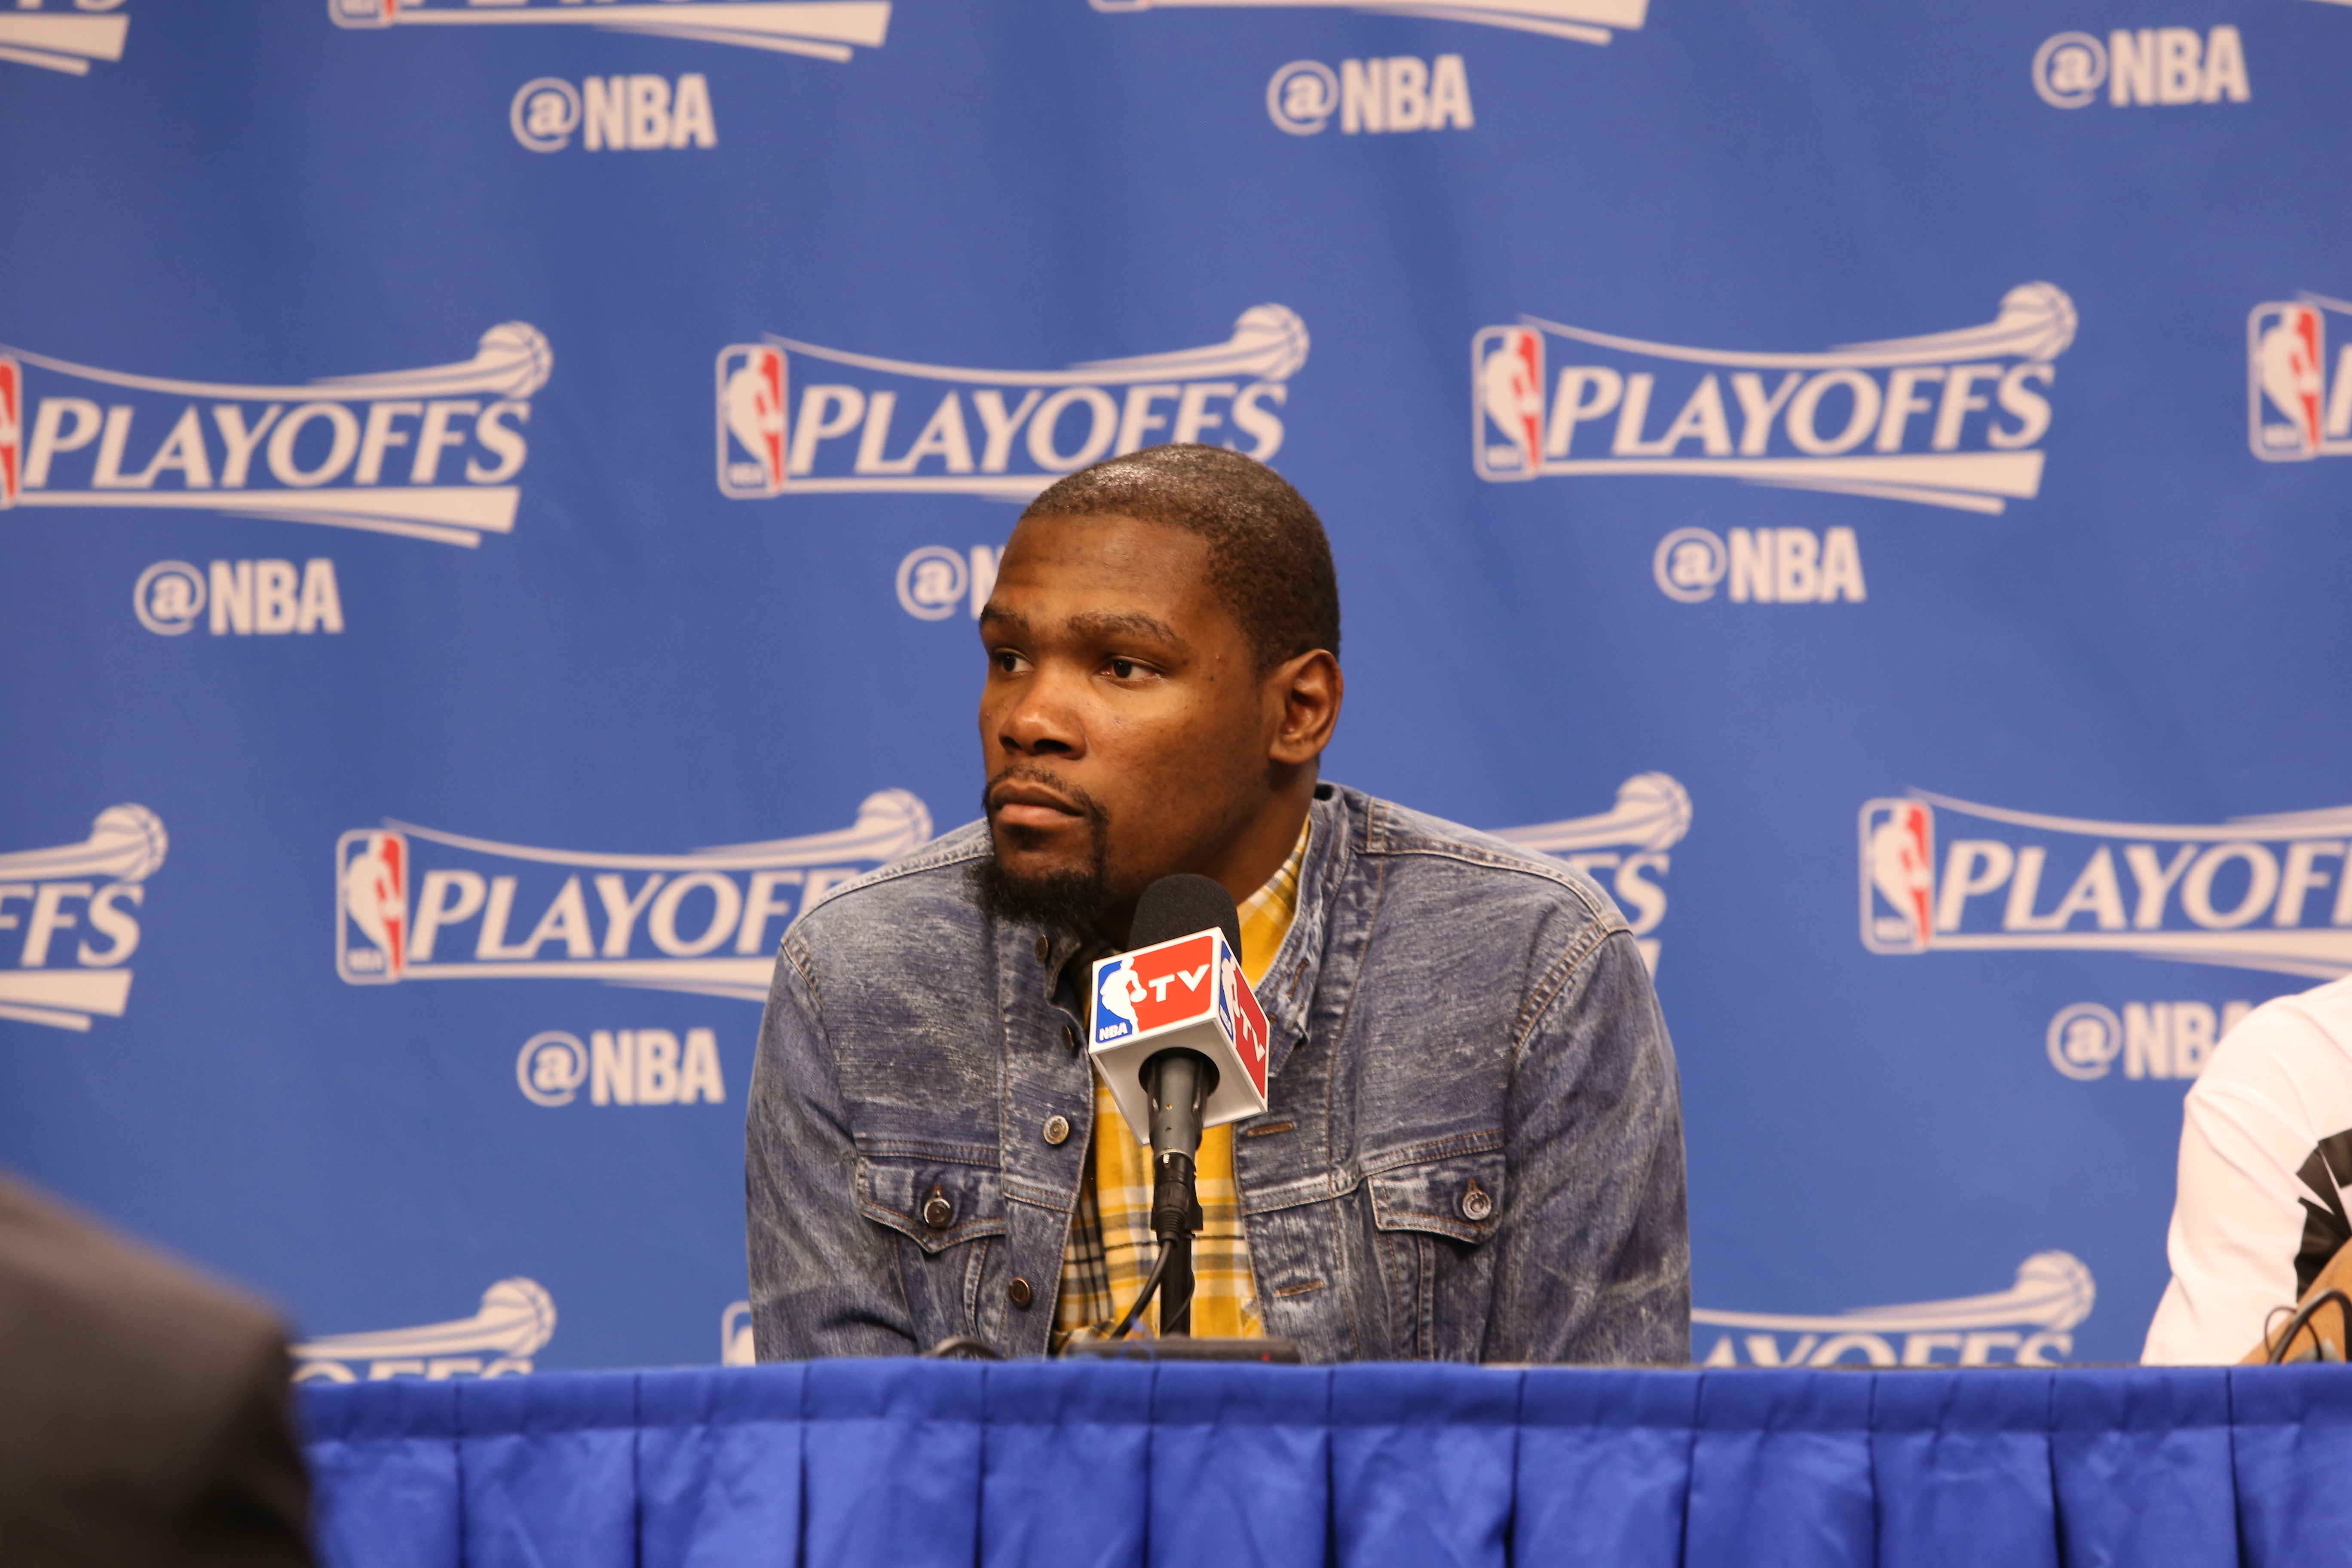 DALLAS, TX - APRIL 21: Kevin Durant #35 of the Oklahoma City Thunder speaks to the media after Game Three of the Western Conference Quarterfinals of the 2016 NBA Playoffs against the Dallas Mavericks on April 21, 2016 at the American Airlines Center in Da